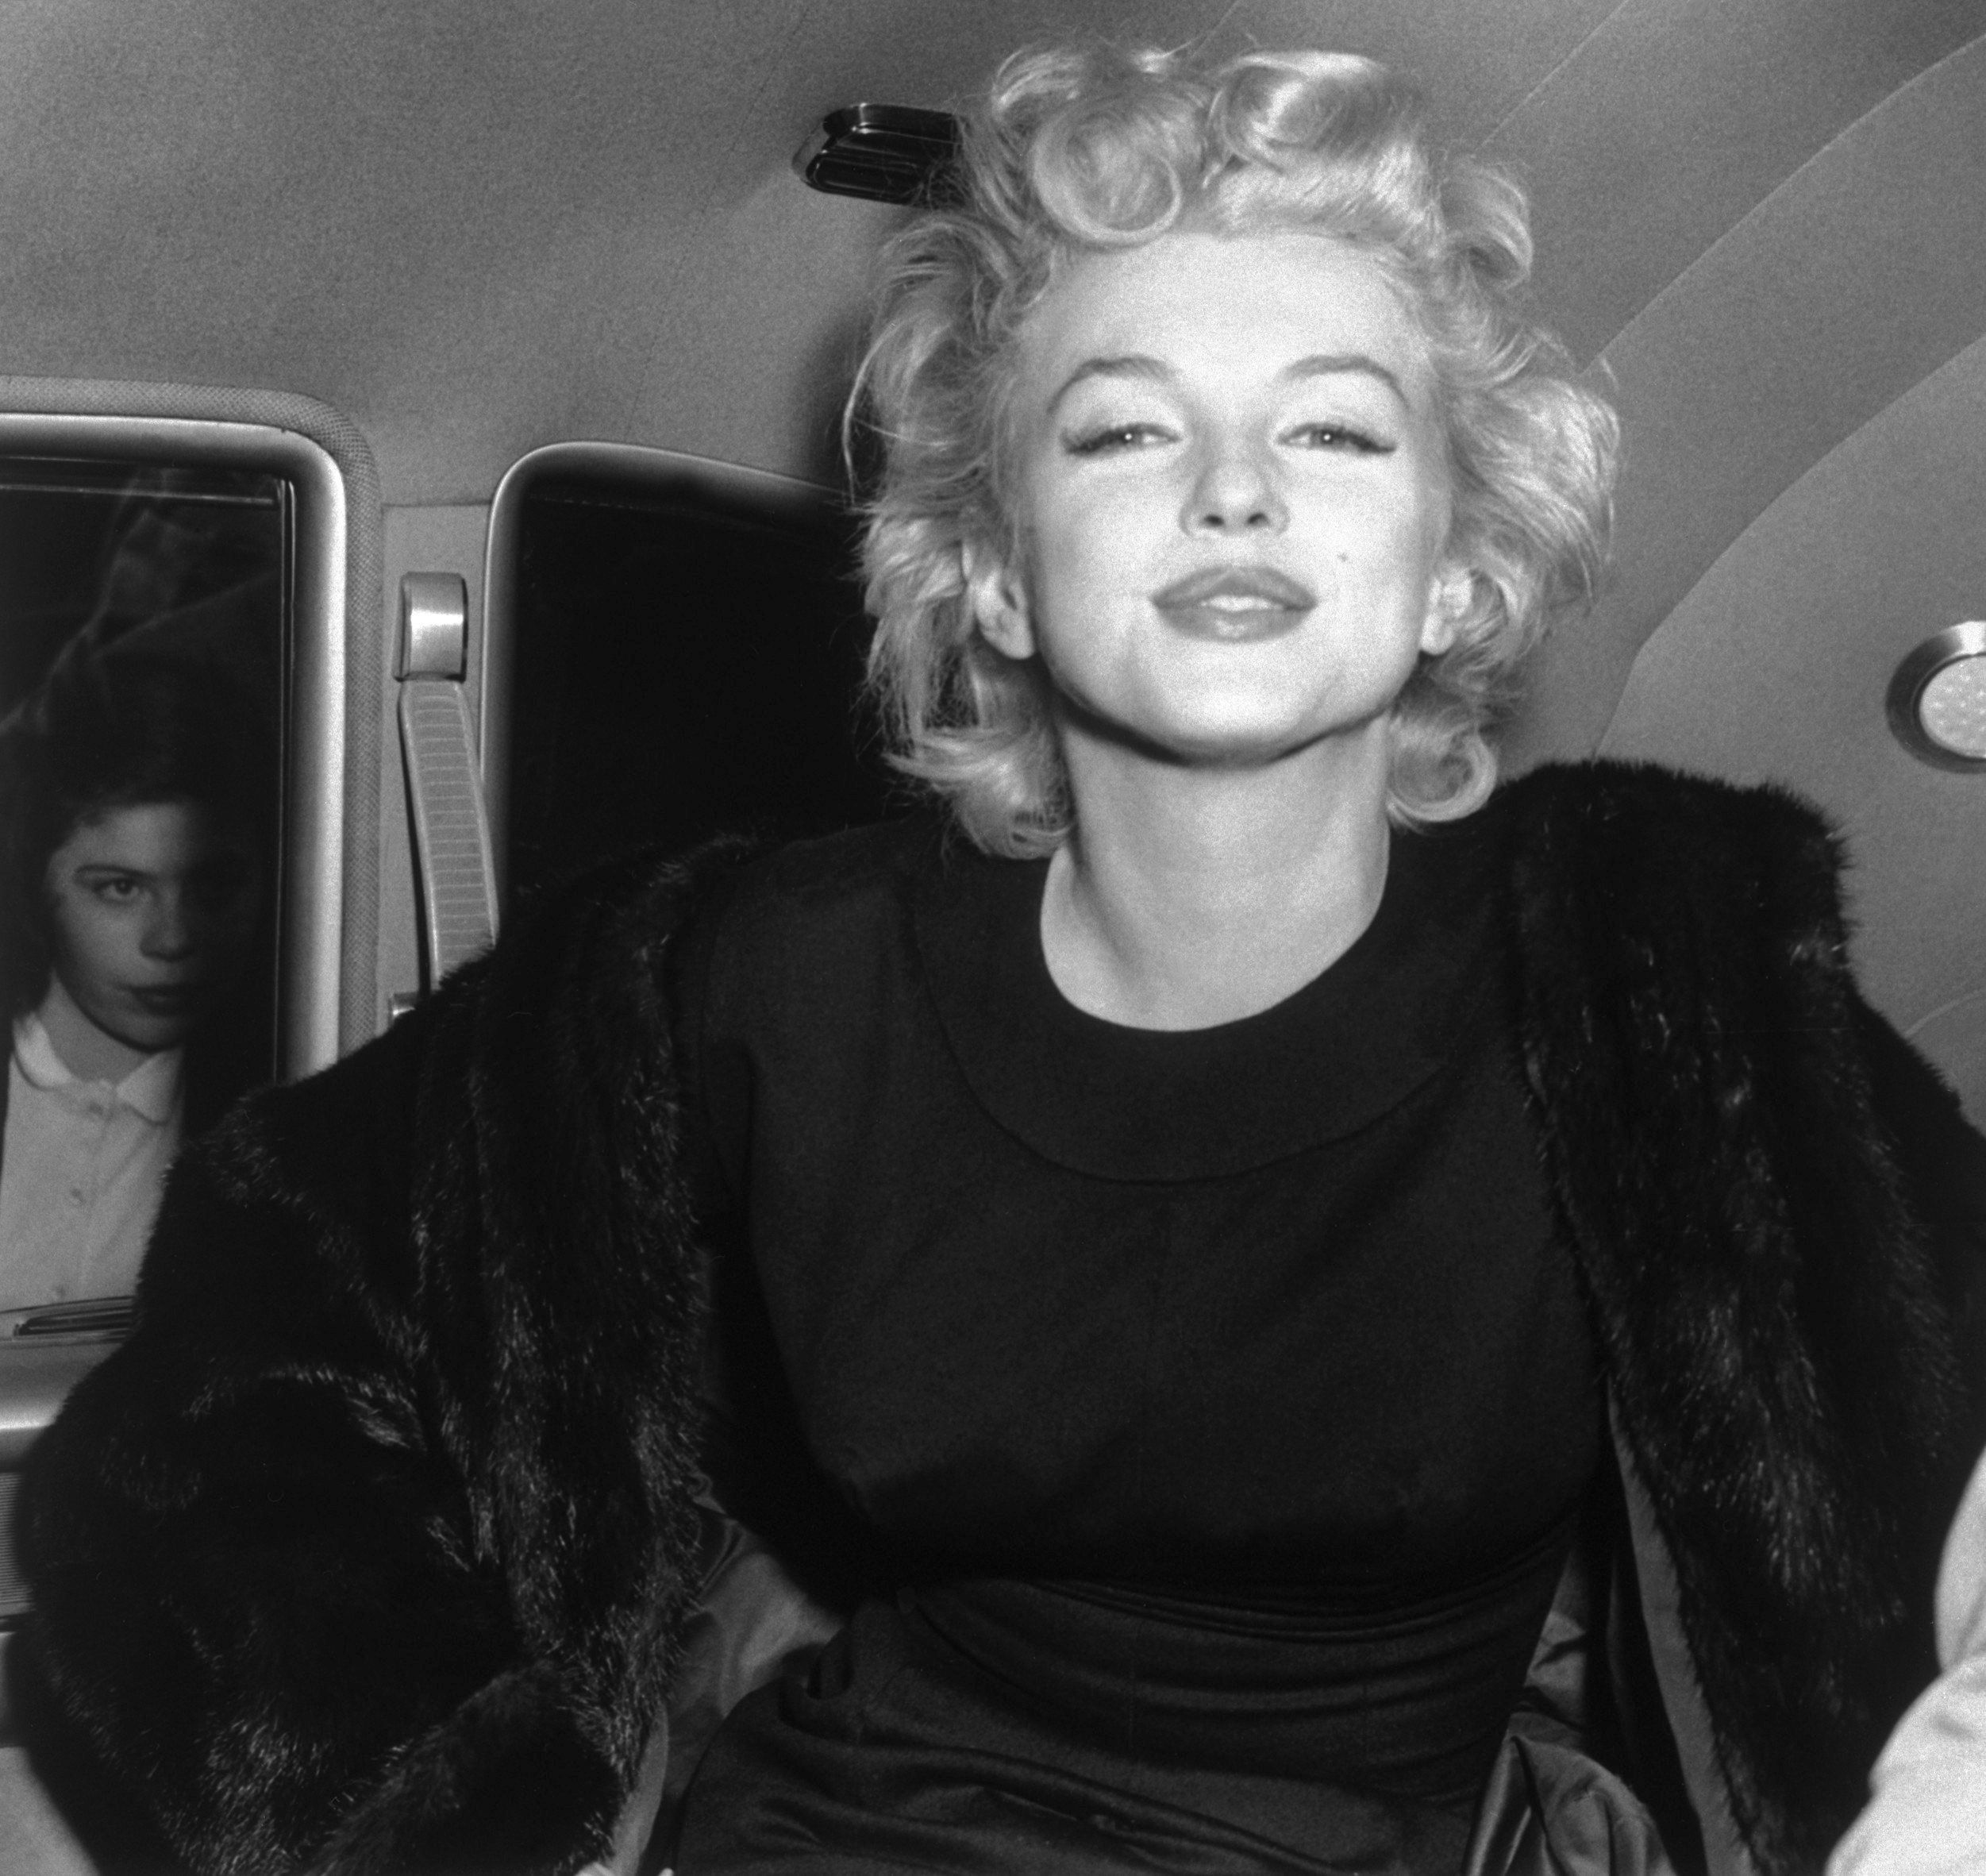 (Original Caption) 6/2/1956-New York, NY: Marilyn Monroe after her arrival at Idlewild Airport from the west coast. Shortly after her 30th birthday.